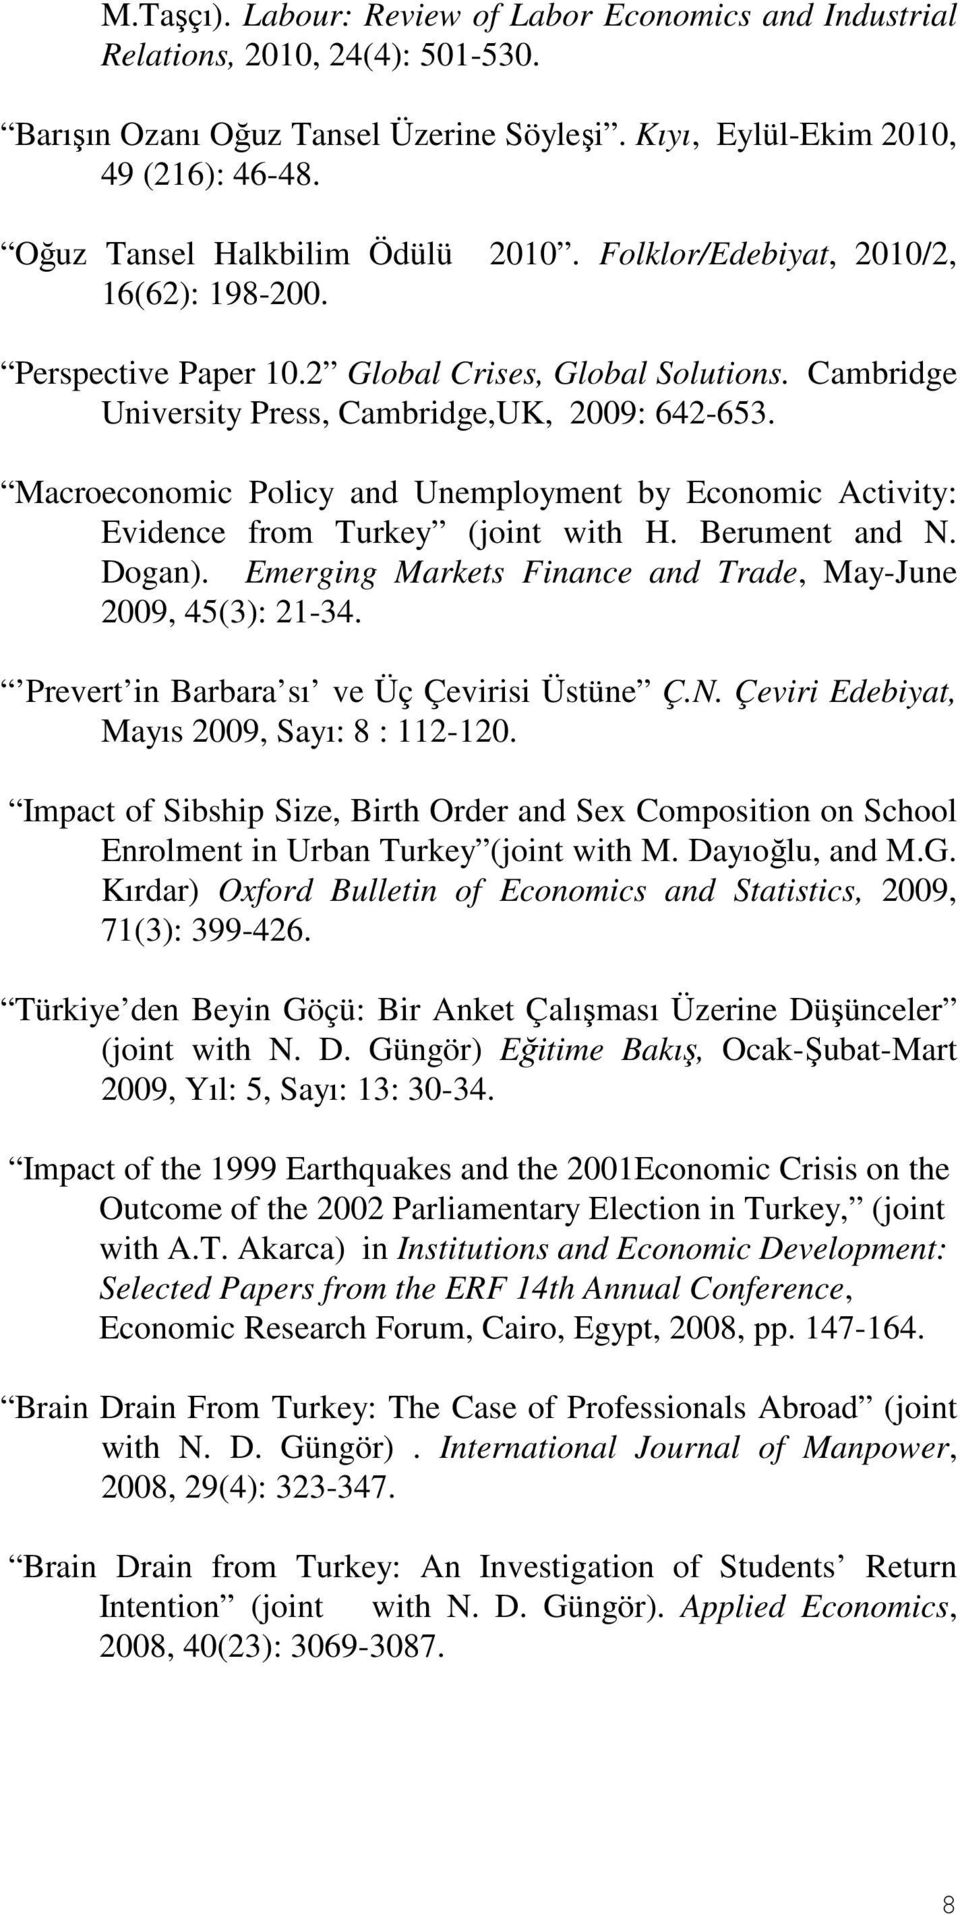 Macroeconomic Policy and Unemployment by Economic Activity: Evidence from Turkey (joint with H. Berument and N. Dogan). Emerging Markets Finance and Trade, May-June 2009, 45(3): 21-34.